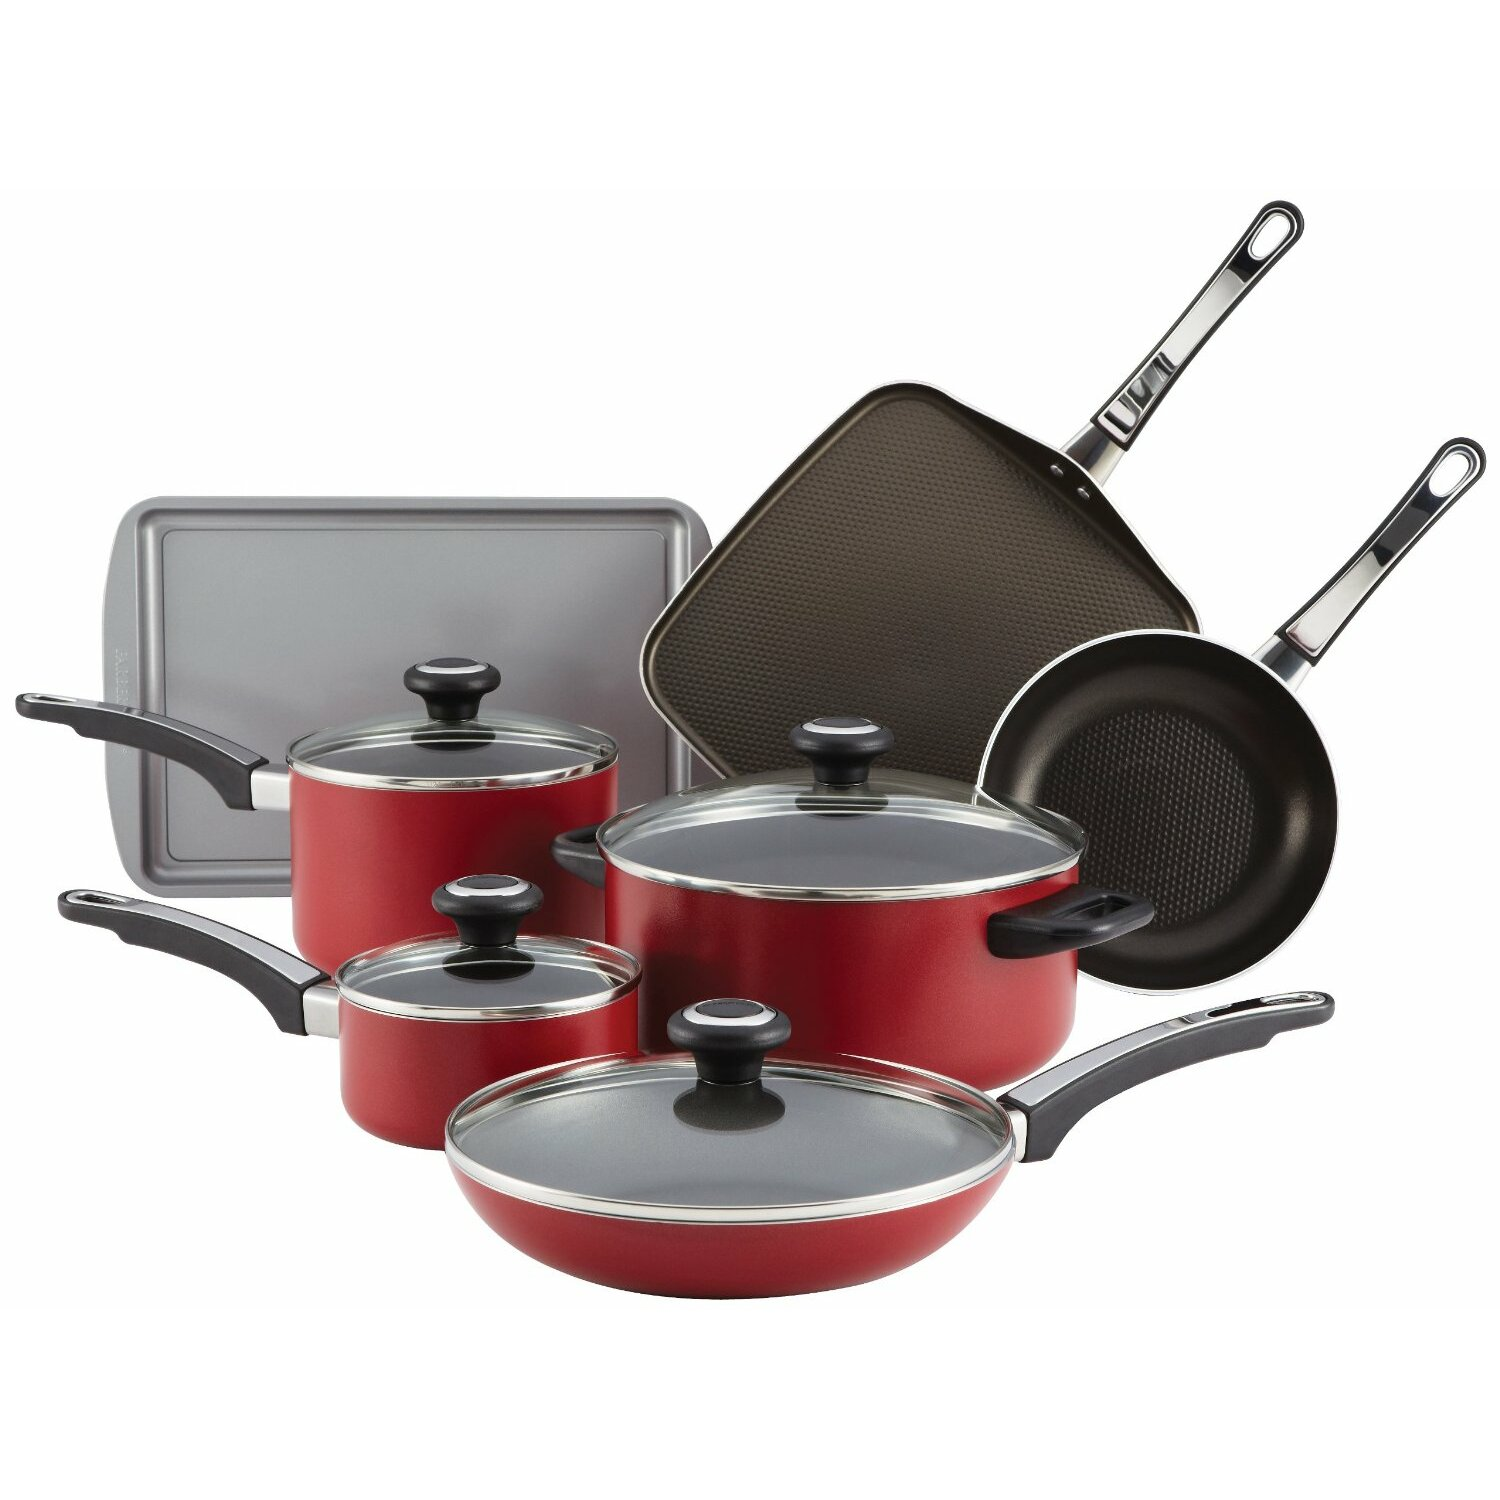 cookware farberware induction cookware farberware 12 piece ...